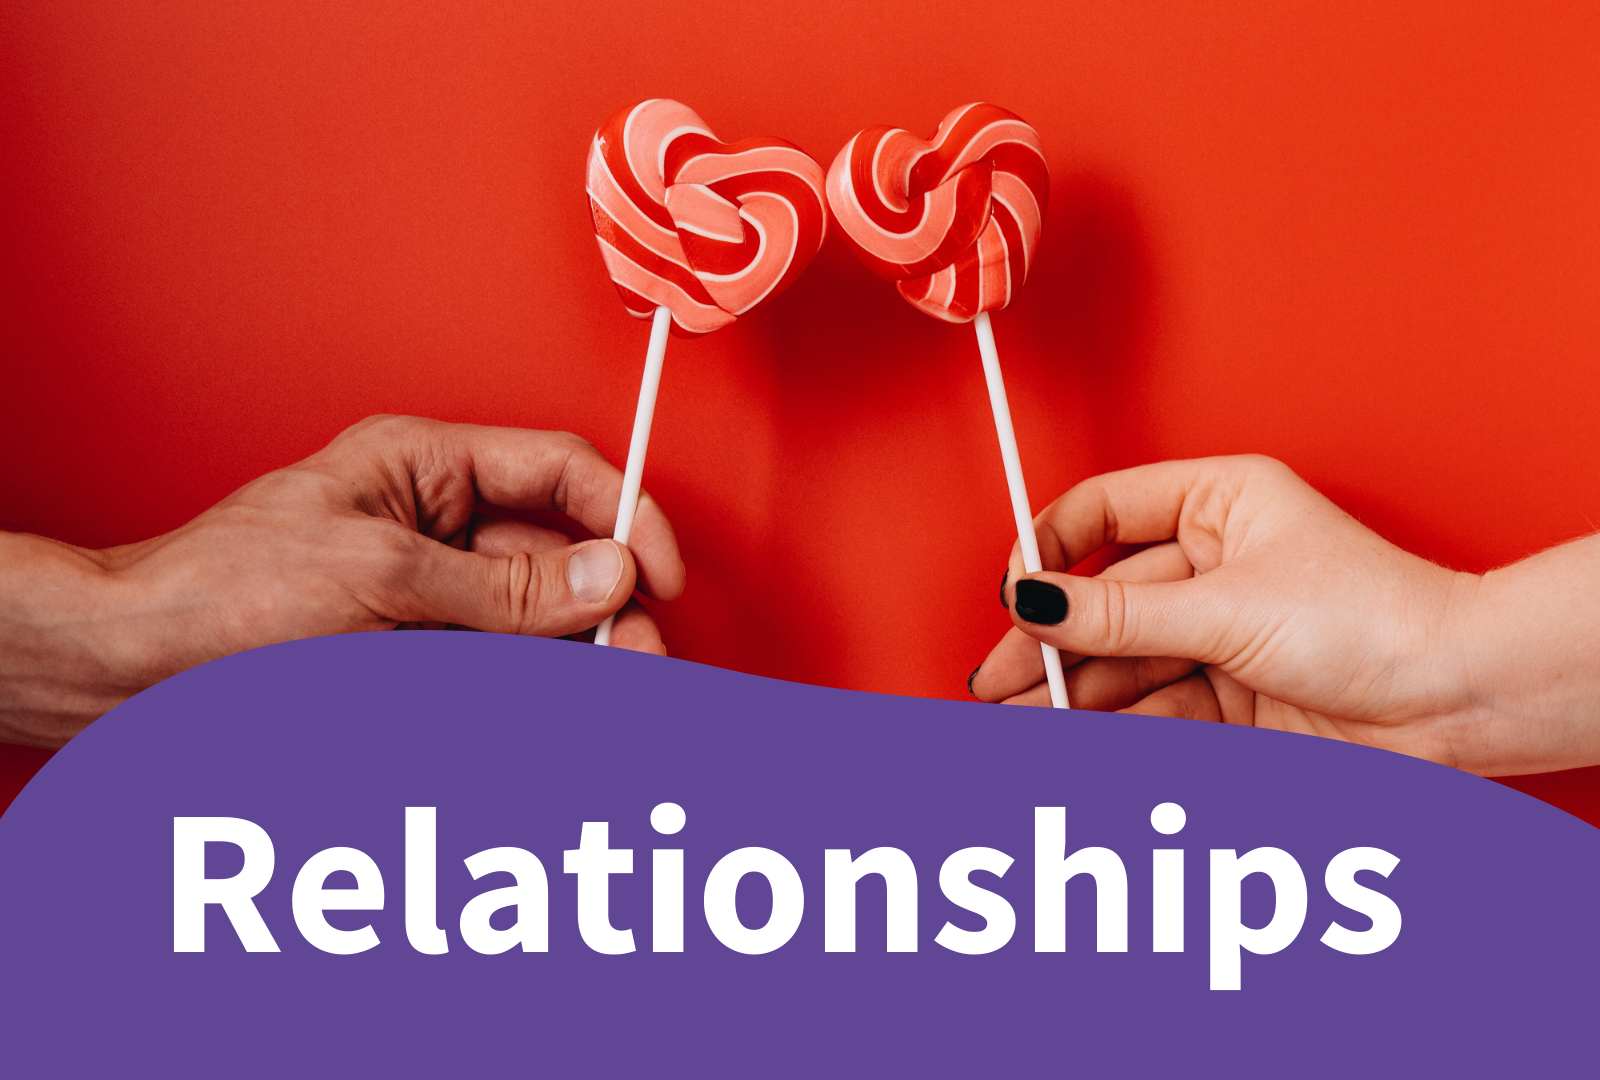 Photo of 2 loveheart shaped lollipops - relationships